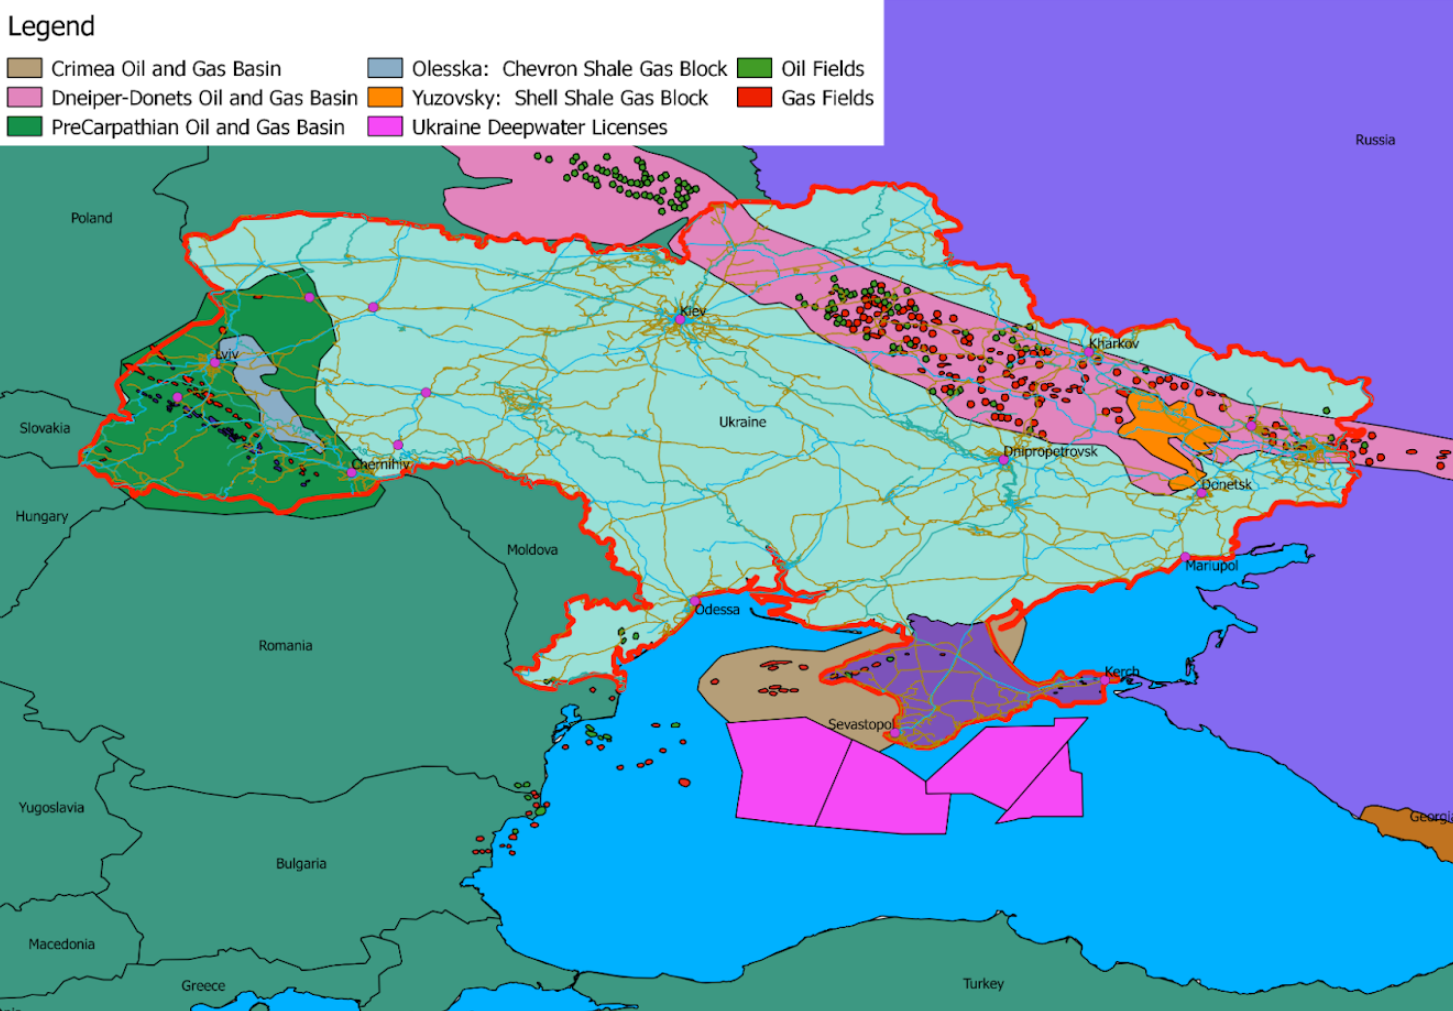 Ukraine's oil and gas resources